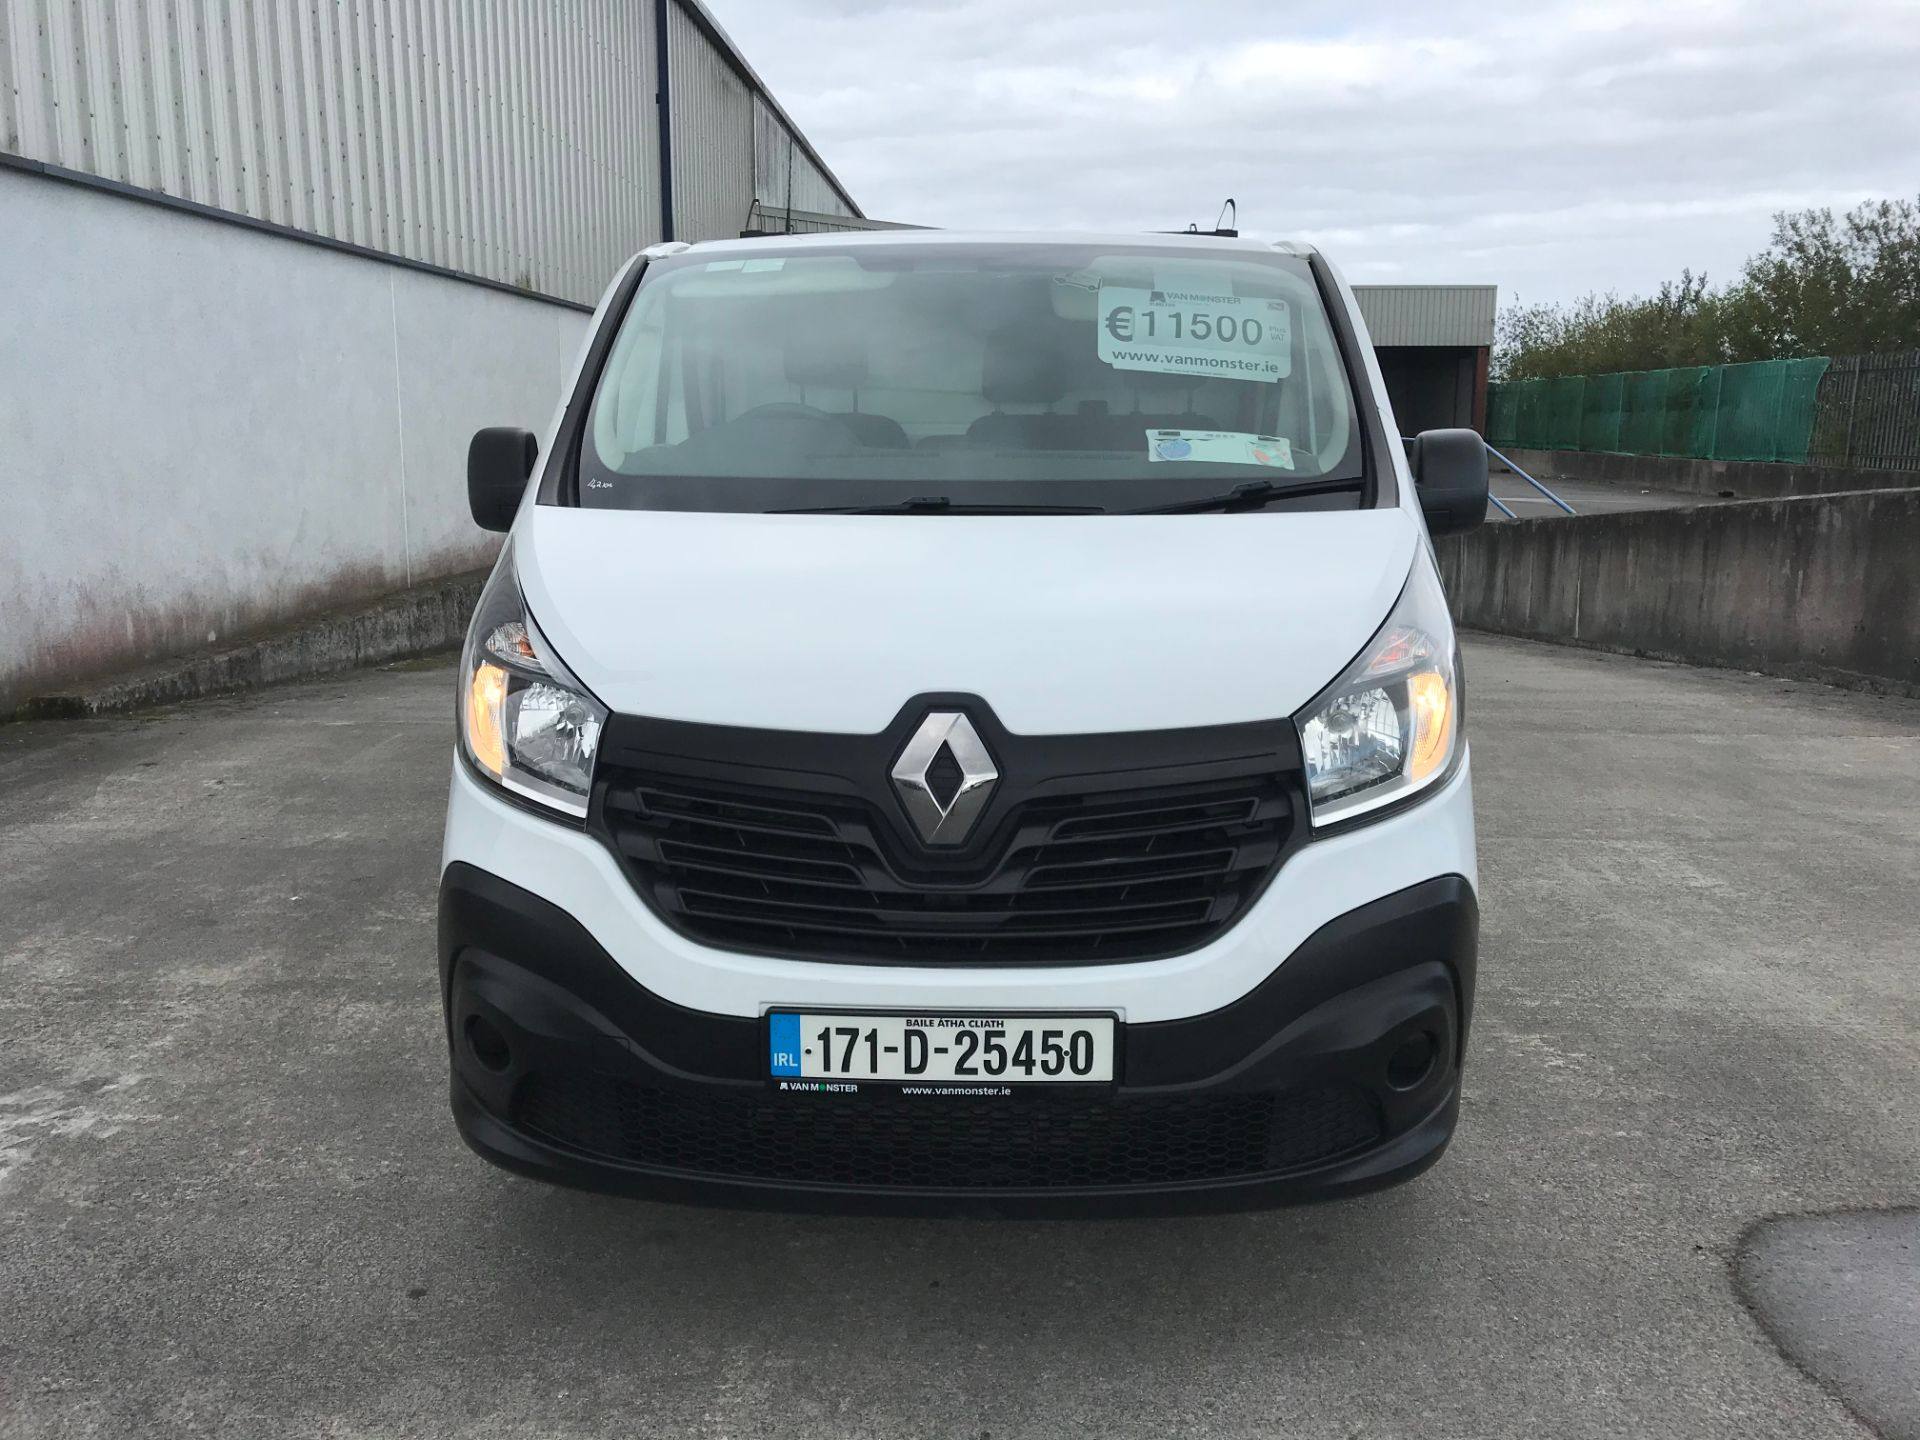 2017 Renault Trafic LL29 DCI 120 Business 3DR (171D25450) Image 2